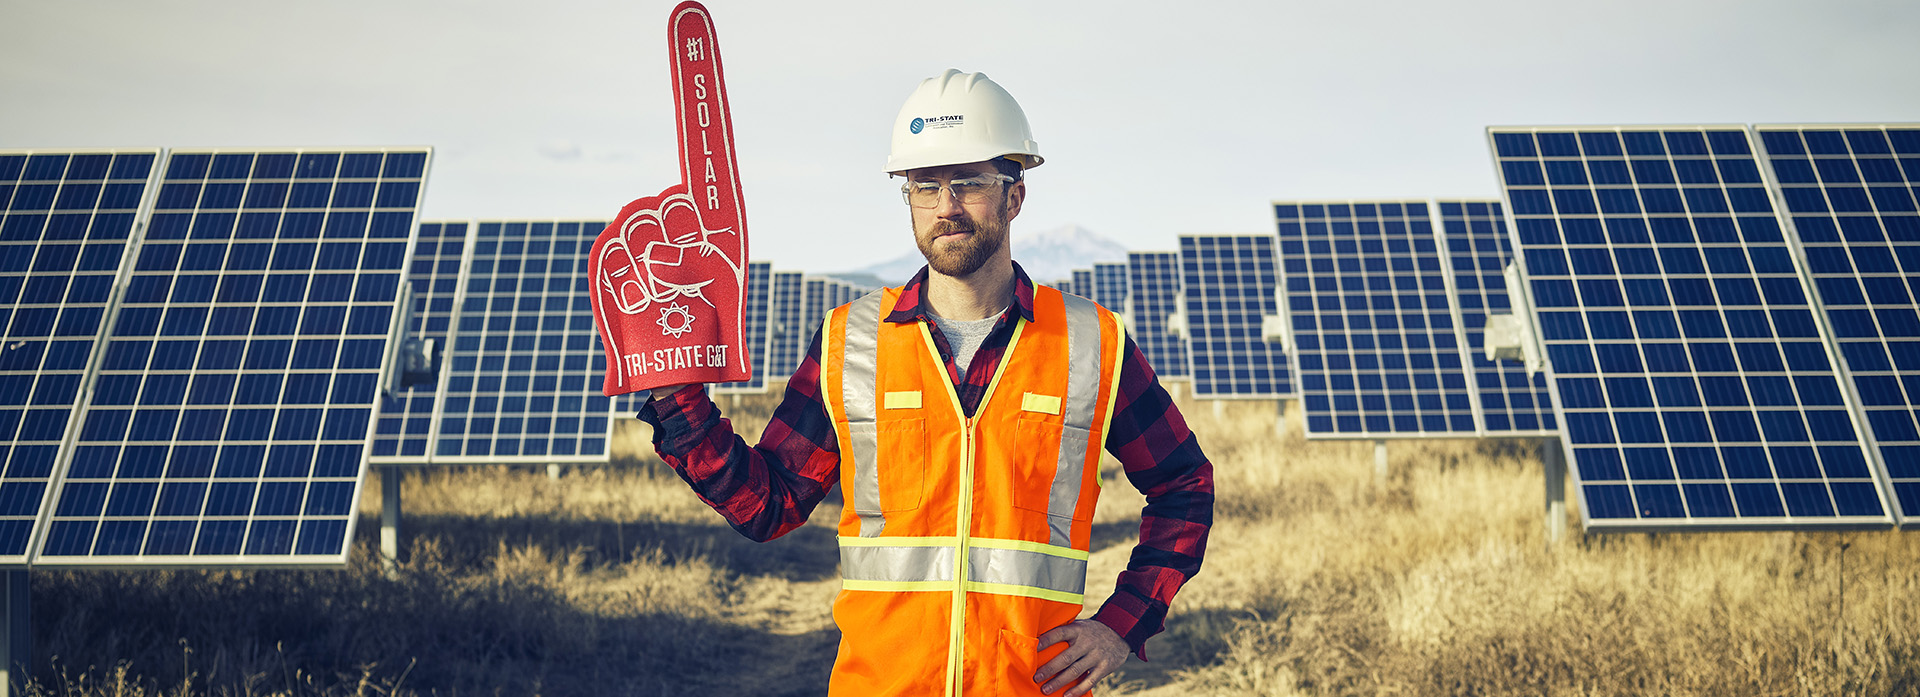 https://www.tristategt.org/sites/tristategt/files/revslider/image/Randy-solar-hero-030819.jpg